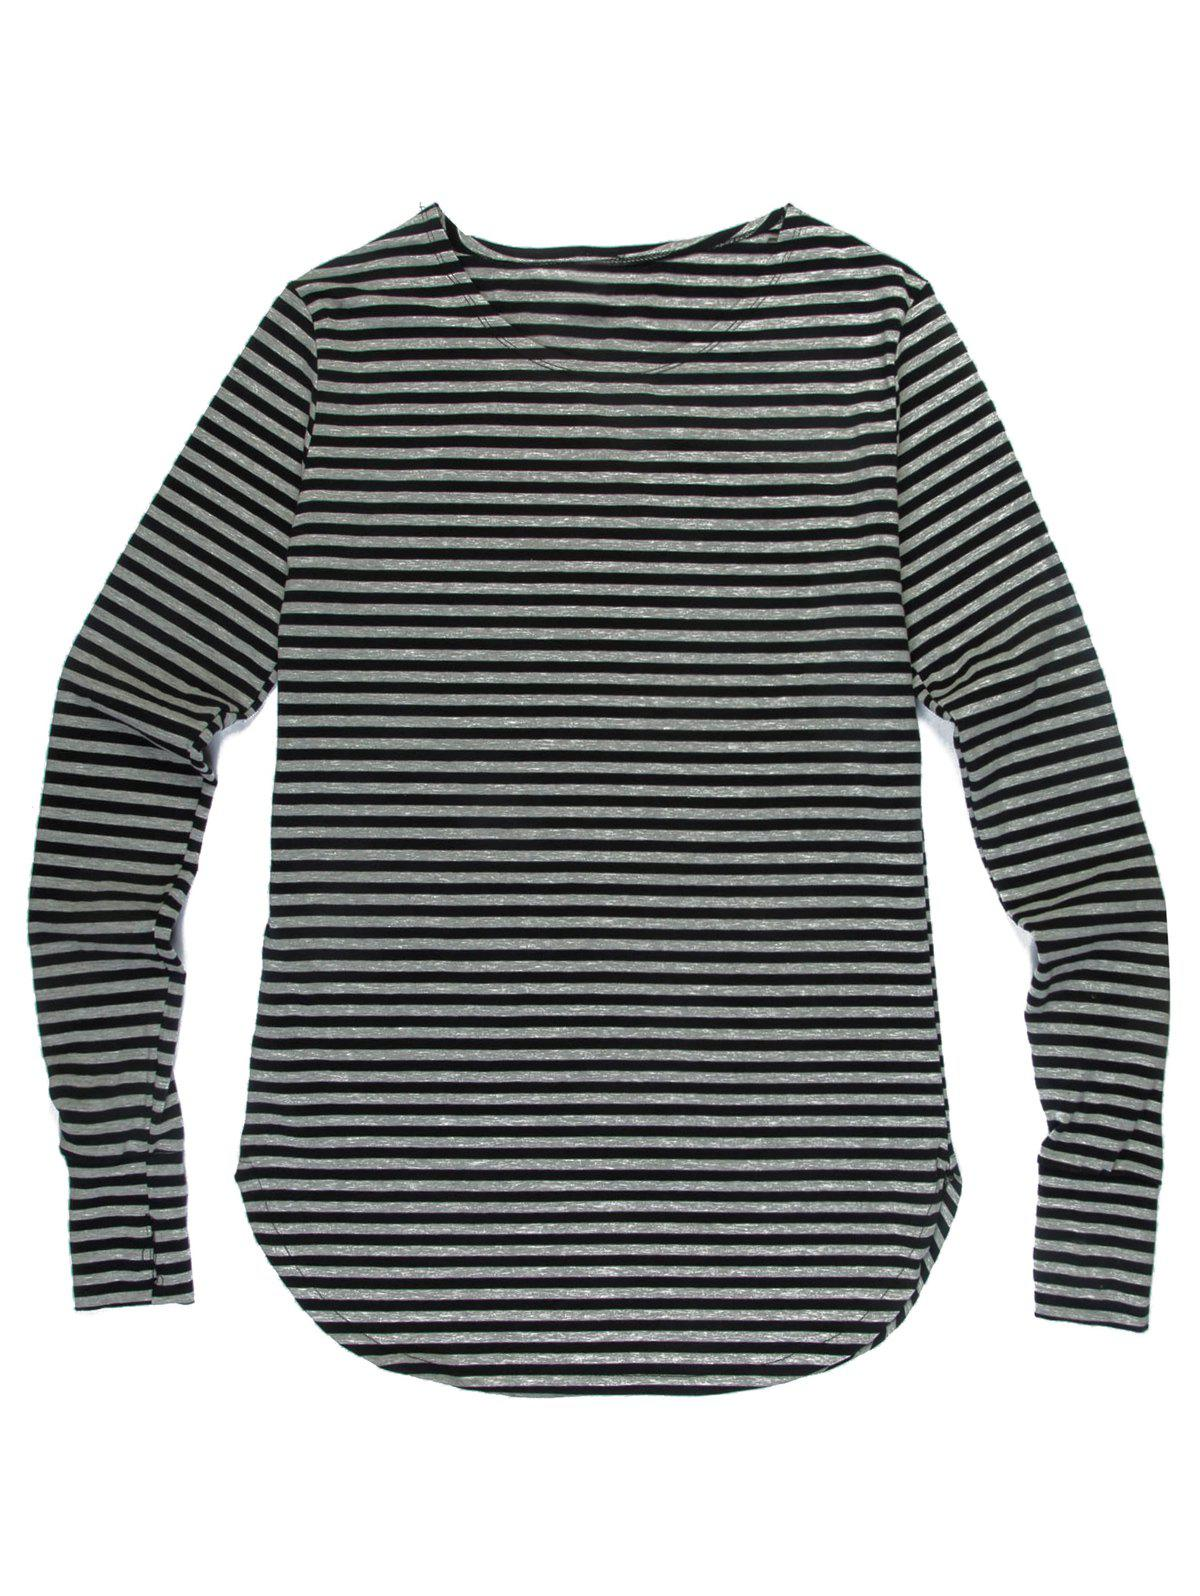 Men's Fashion Loose Fit Striped Long Sleeves T-Shirt